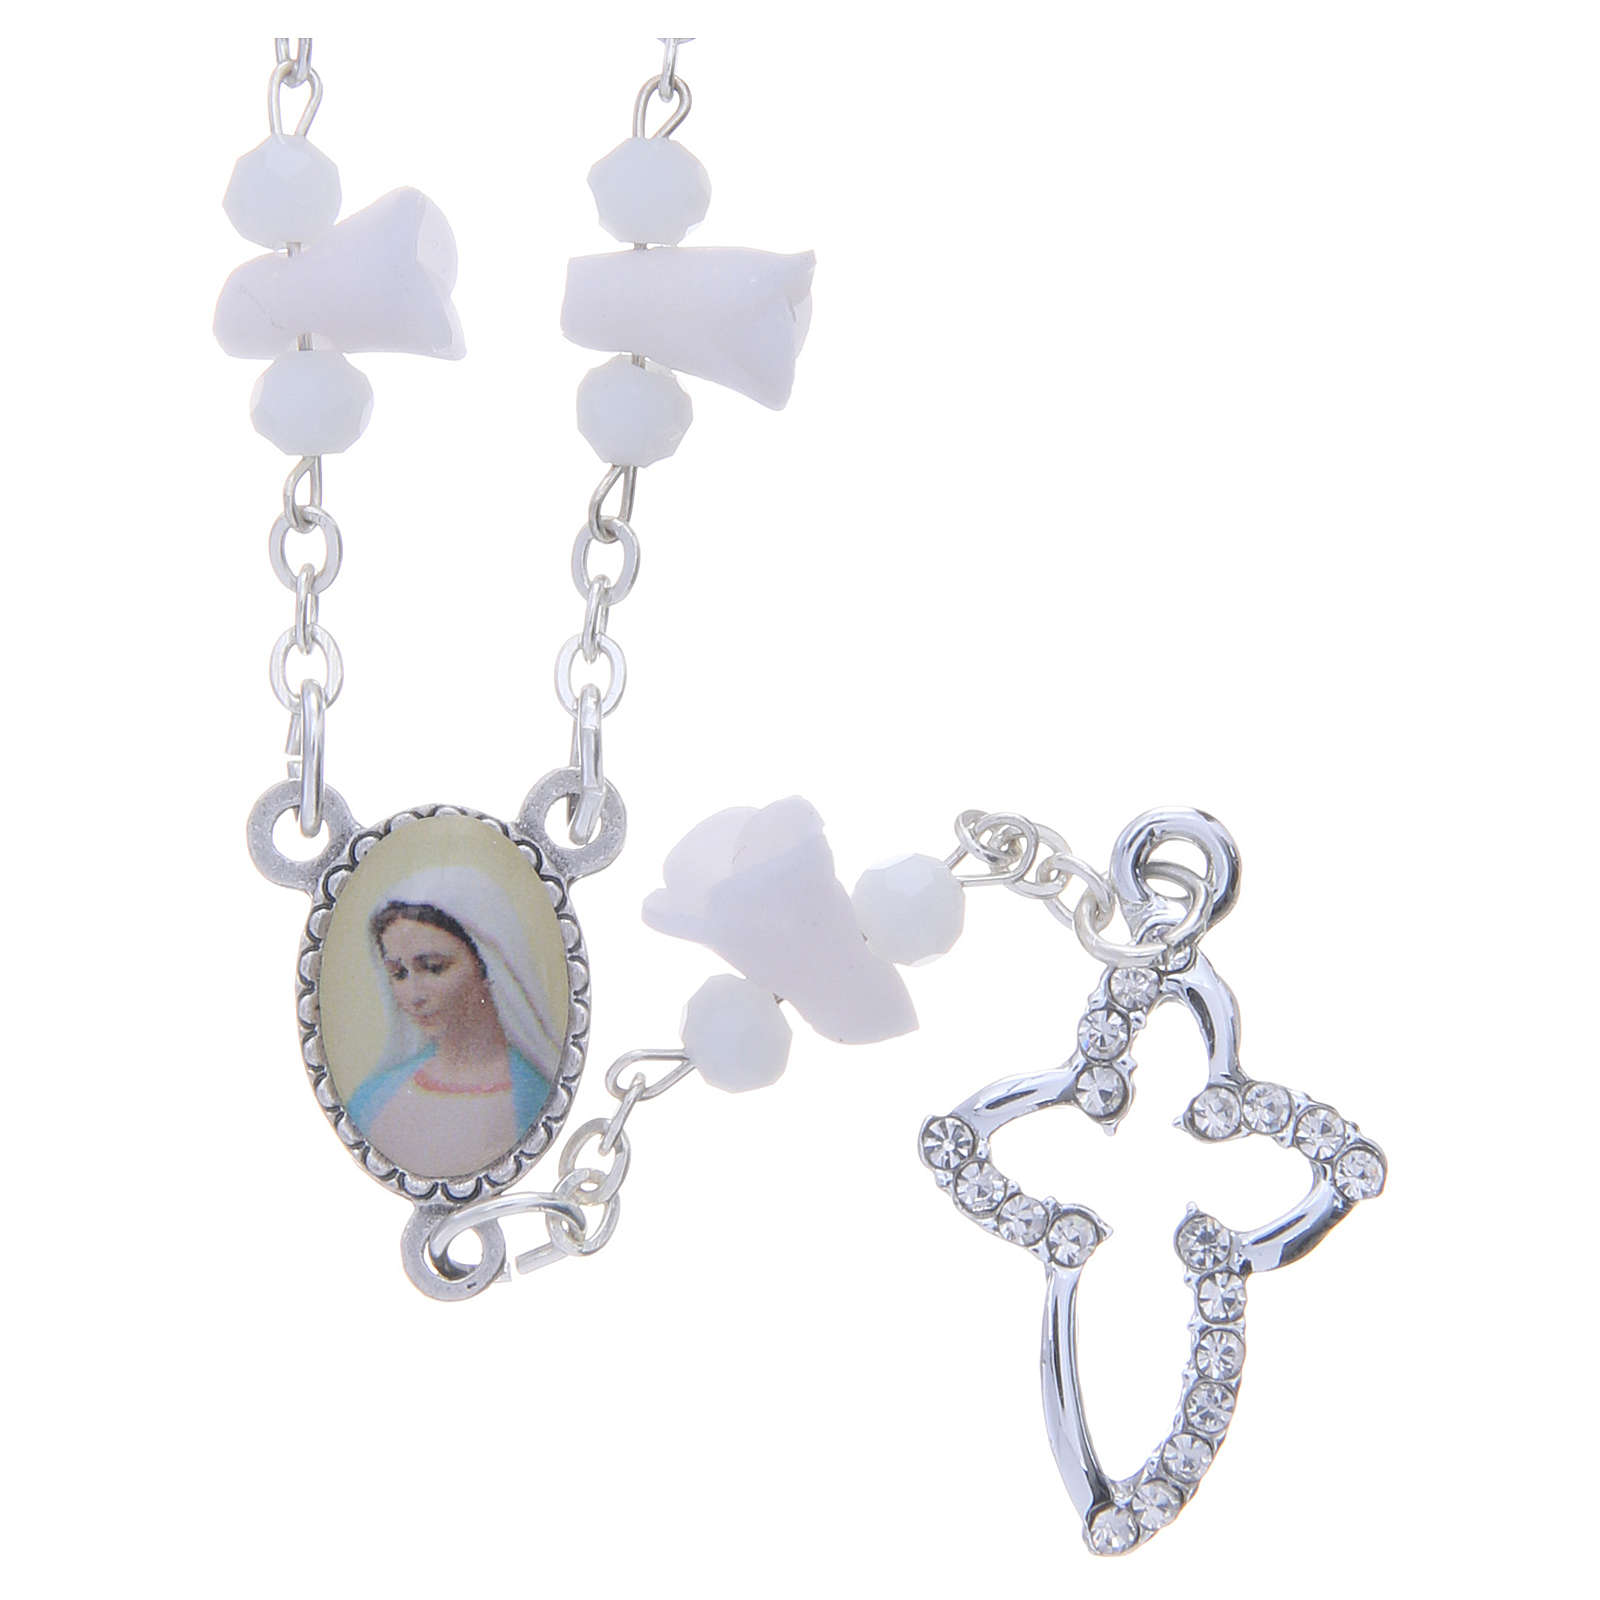 Collier chapelet Medjugorje roses blanches céramique icône Vierge 4